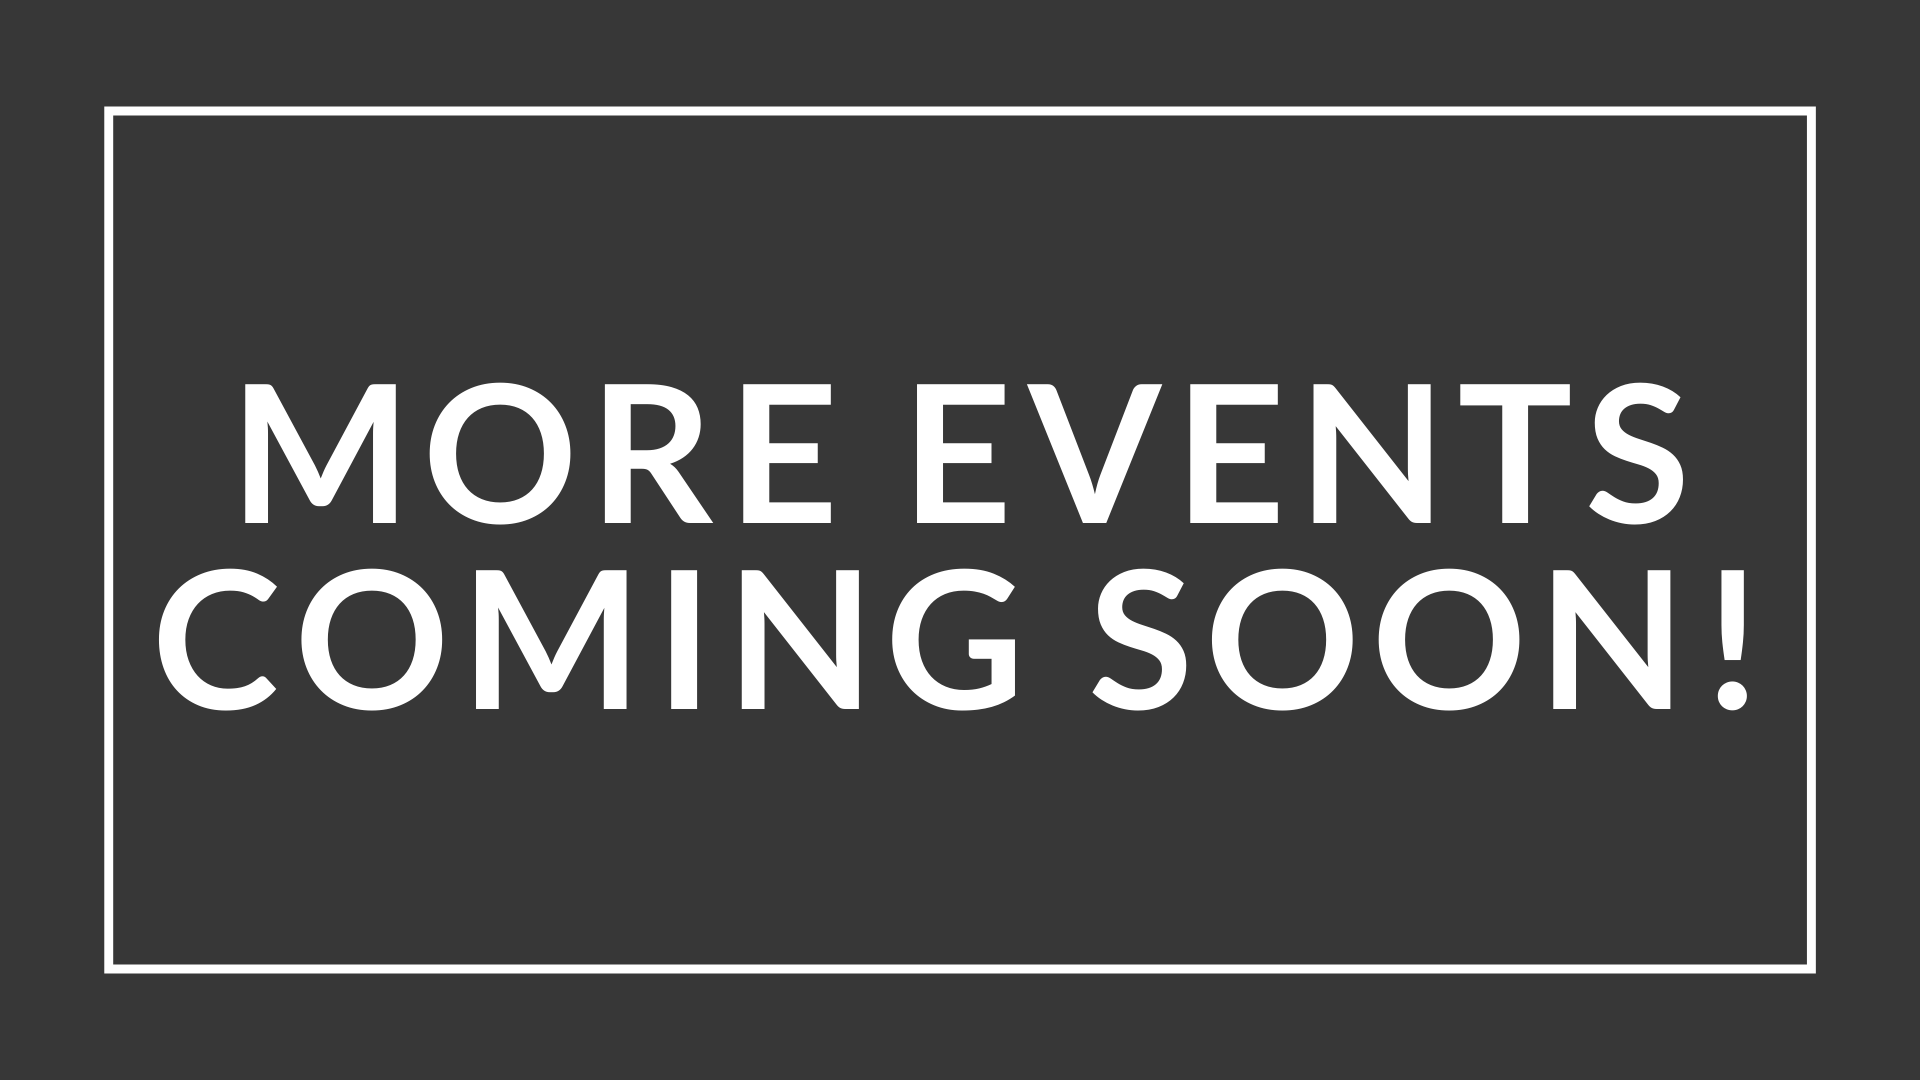 MORE EVENTS COMING SOON